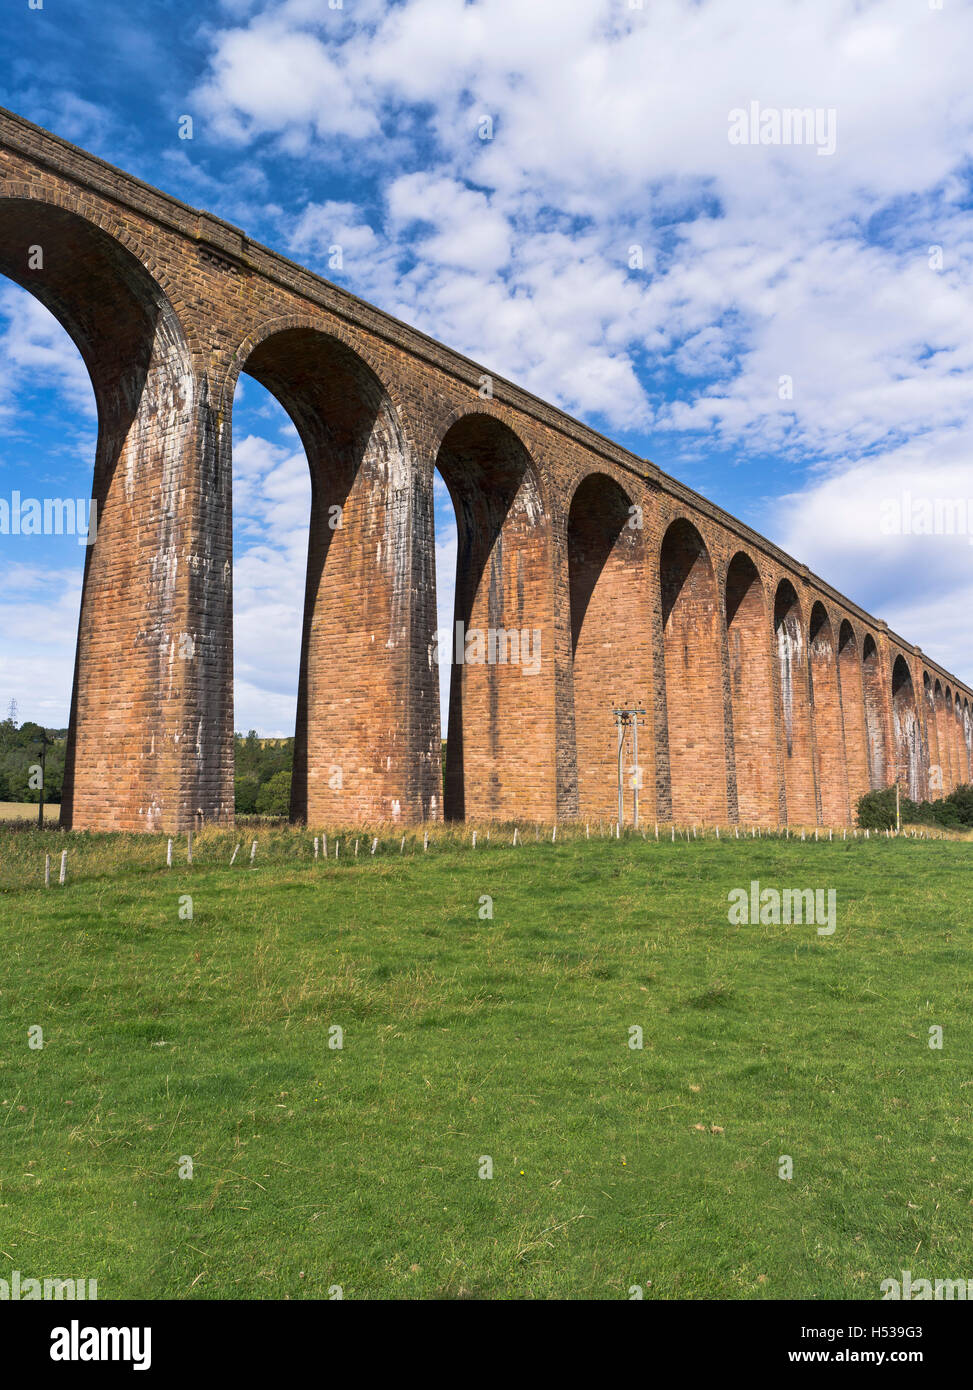 dh Nairn Railway Viaduct NAIRN VALLEY INVERNESS SHIRE culloden moor viaduct spanning the river nairn viaducts scotland - Stock Image